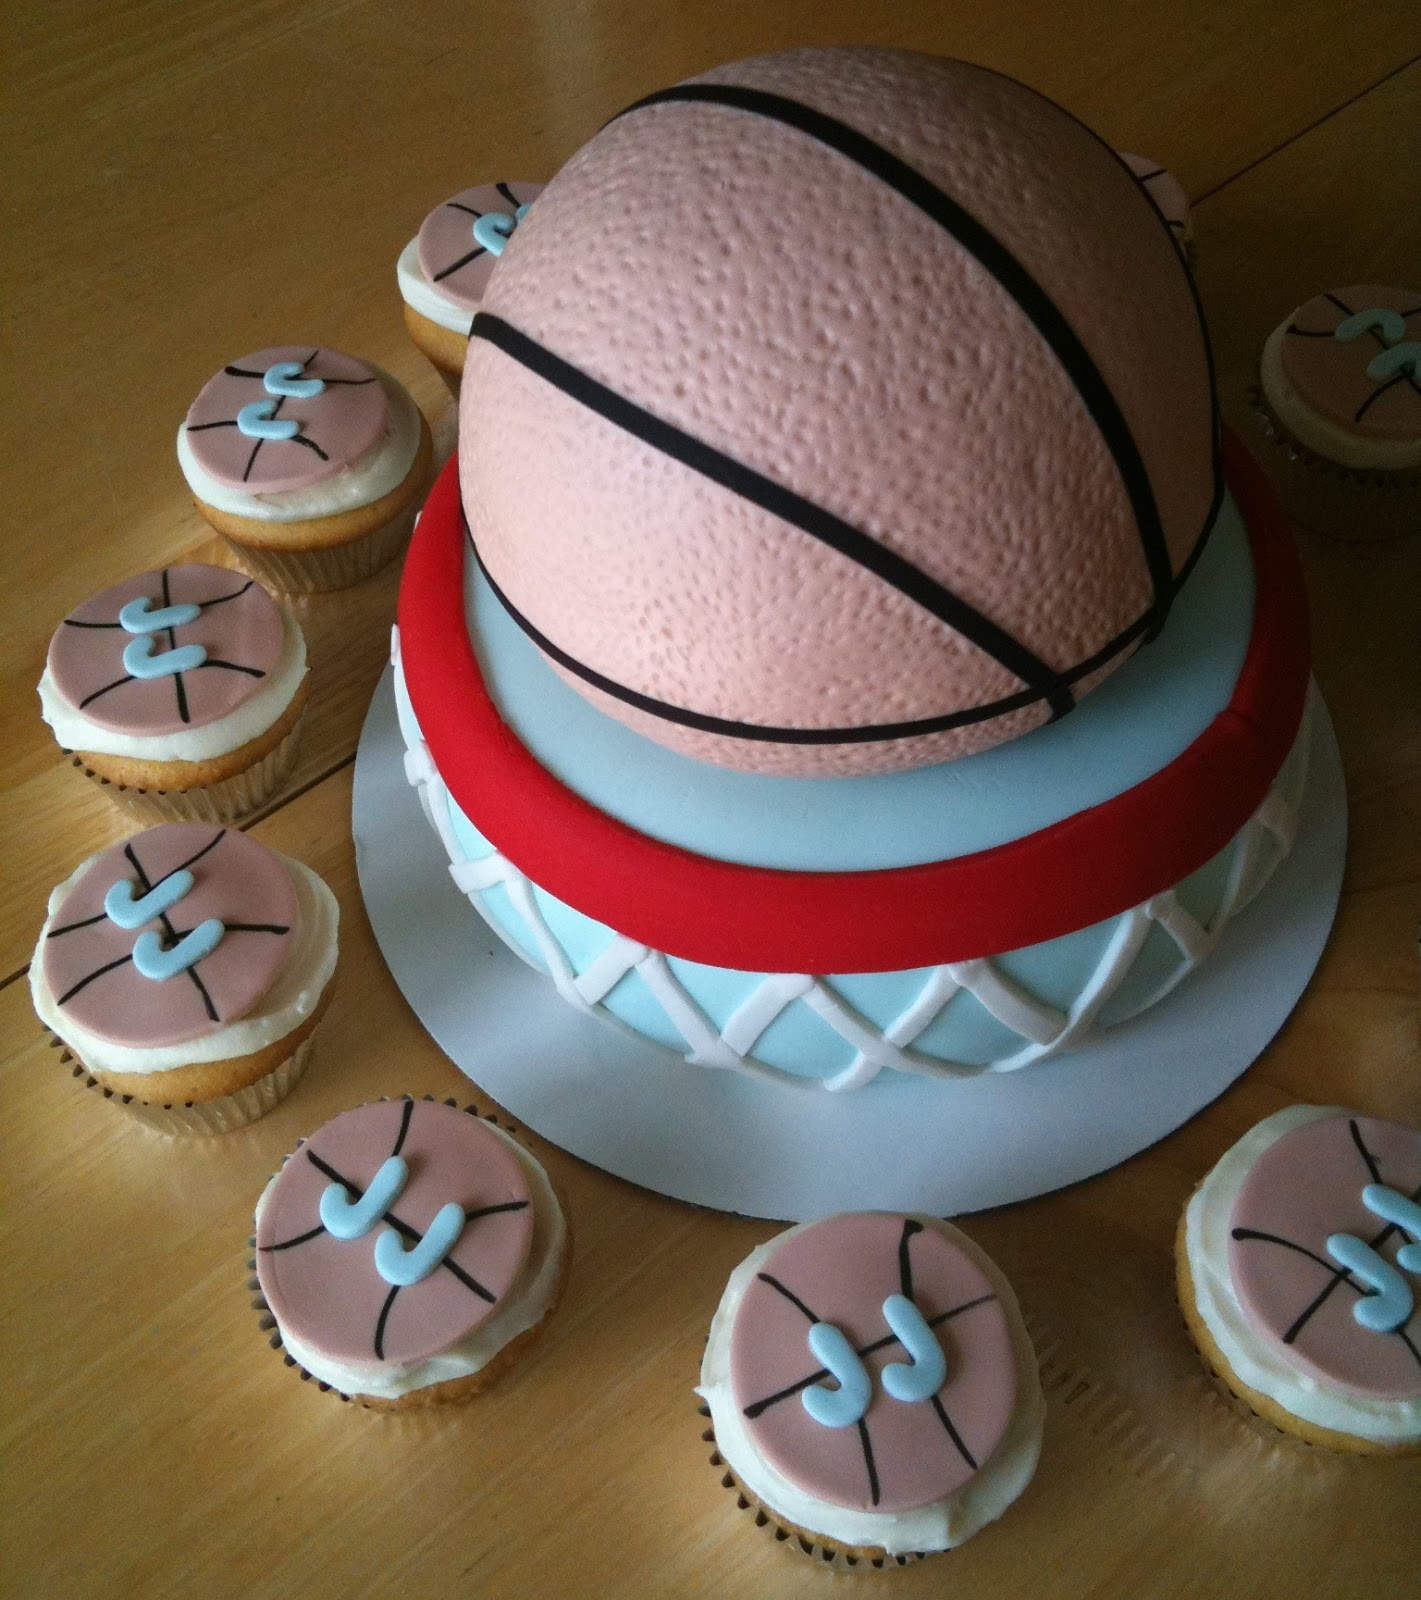 I Design Basketball Cake Tutorial